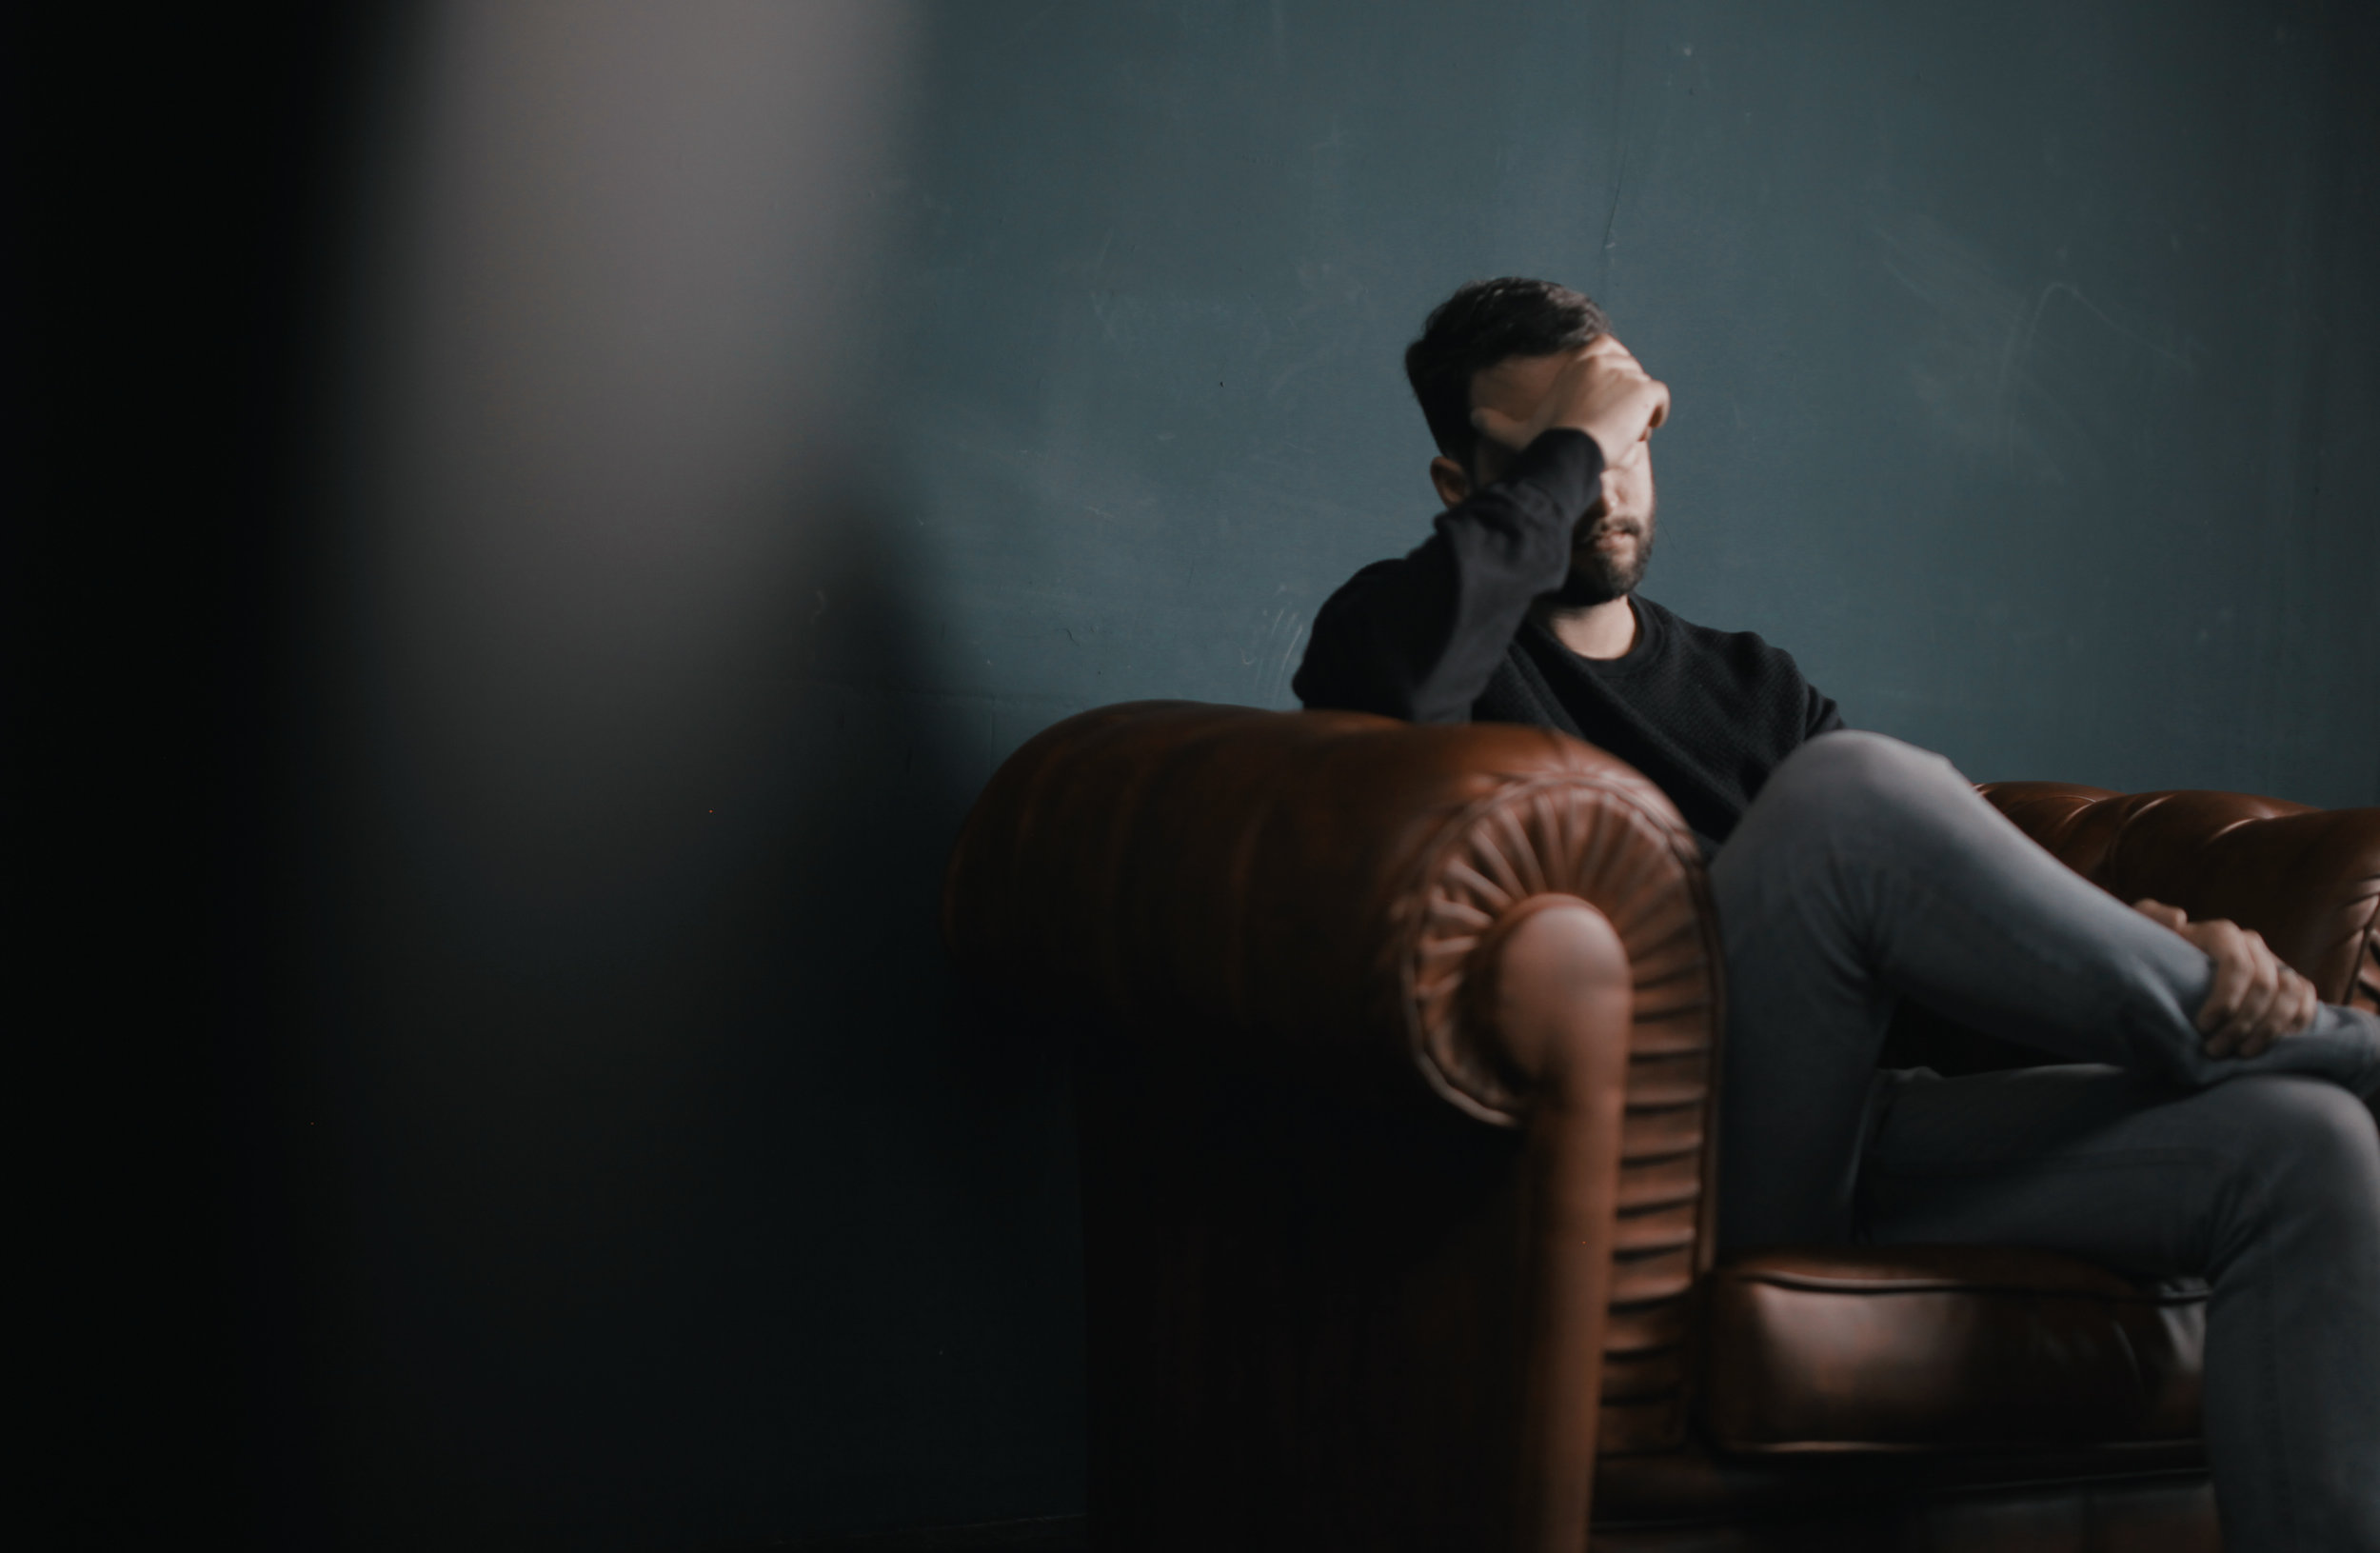 Who can help me through my mental health issues? - What do they do? Who's the best fit for me? Below we take a closer look.